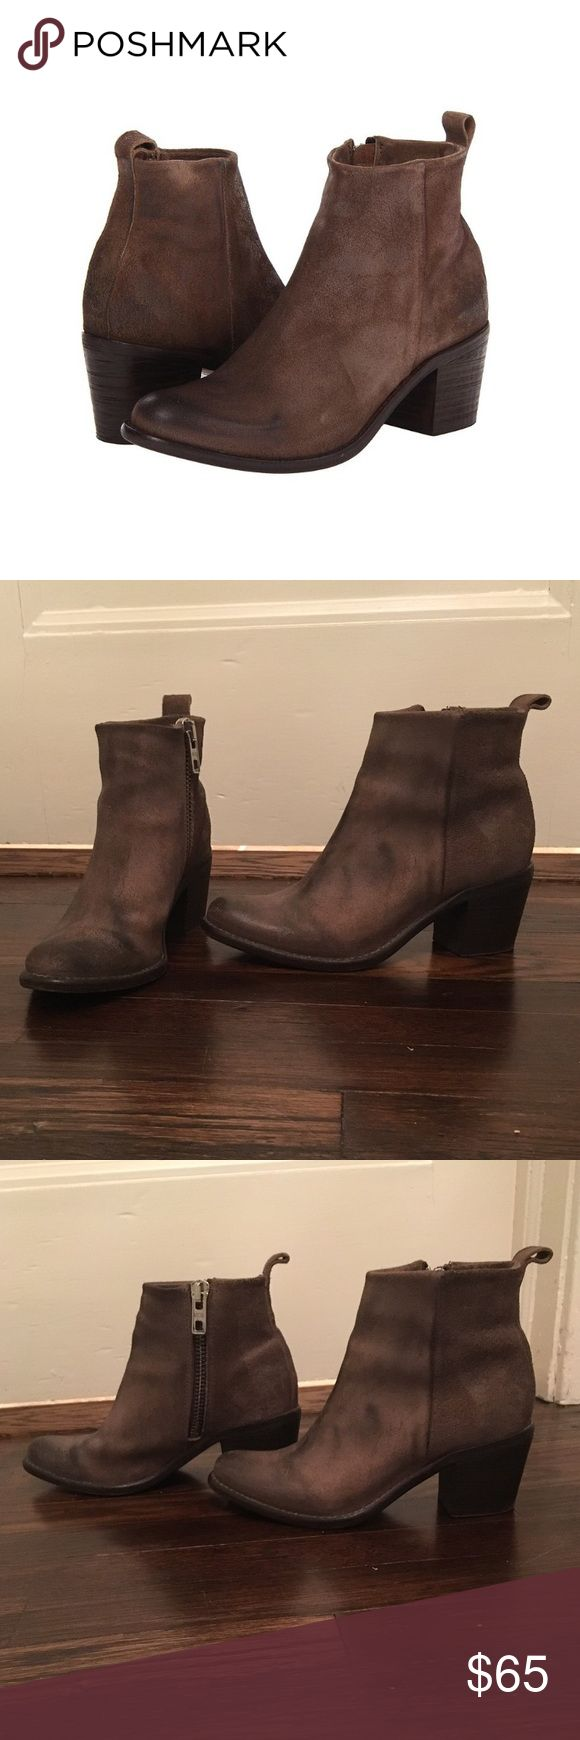 """Diesel booties Brown distressed leather booties by Diesel. Style name Chelsea Show Pinky. Like new condition other than wear on soles. 2.5"""" heel. Inside zips. Diesel Shoes Ankle Boots & Booties"""